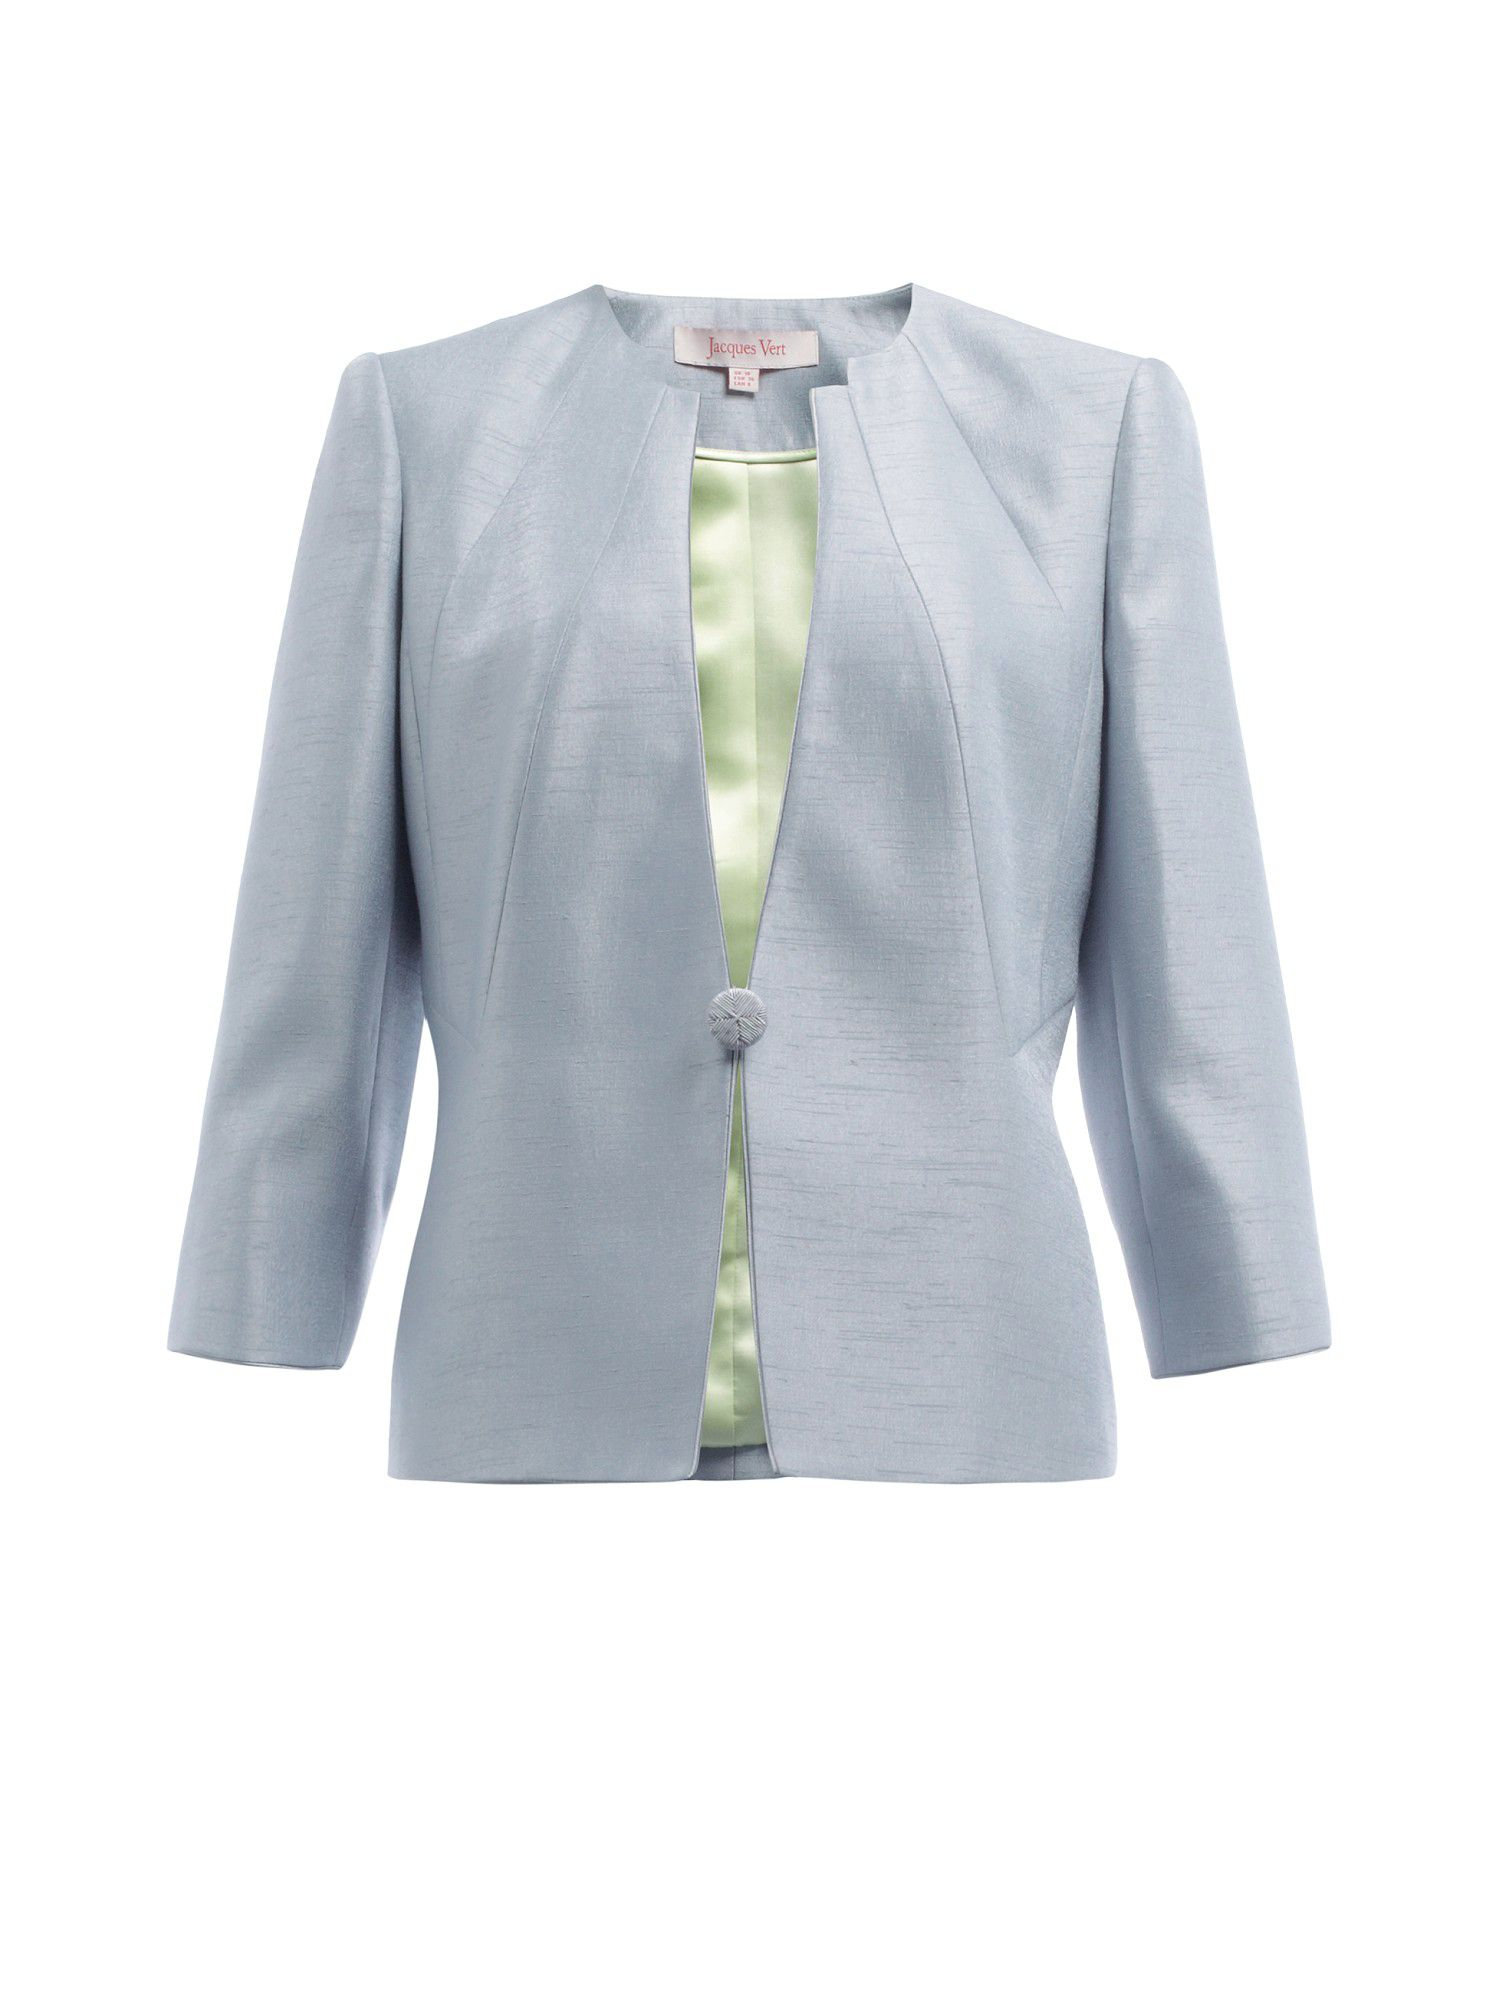 Zinc collarless jacket